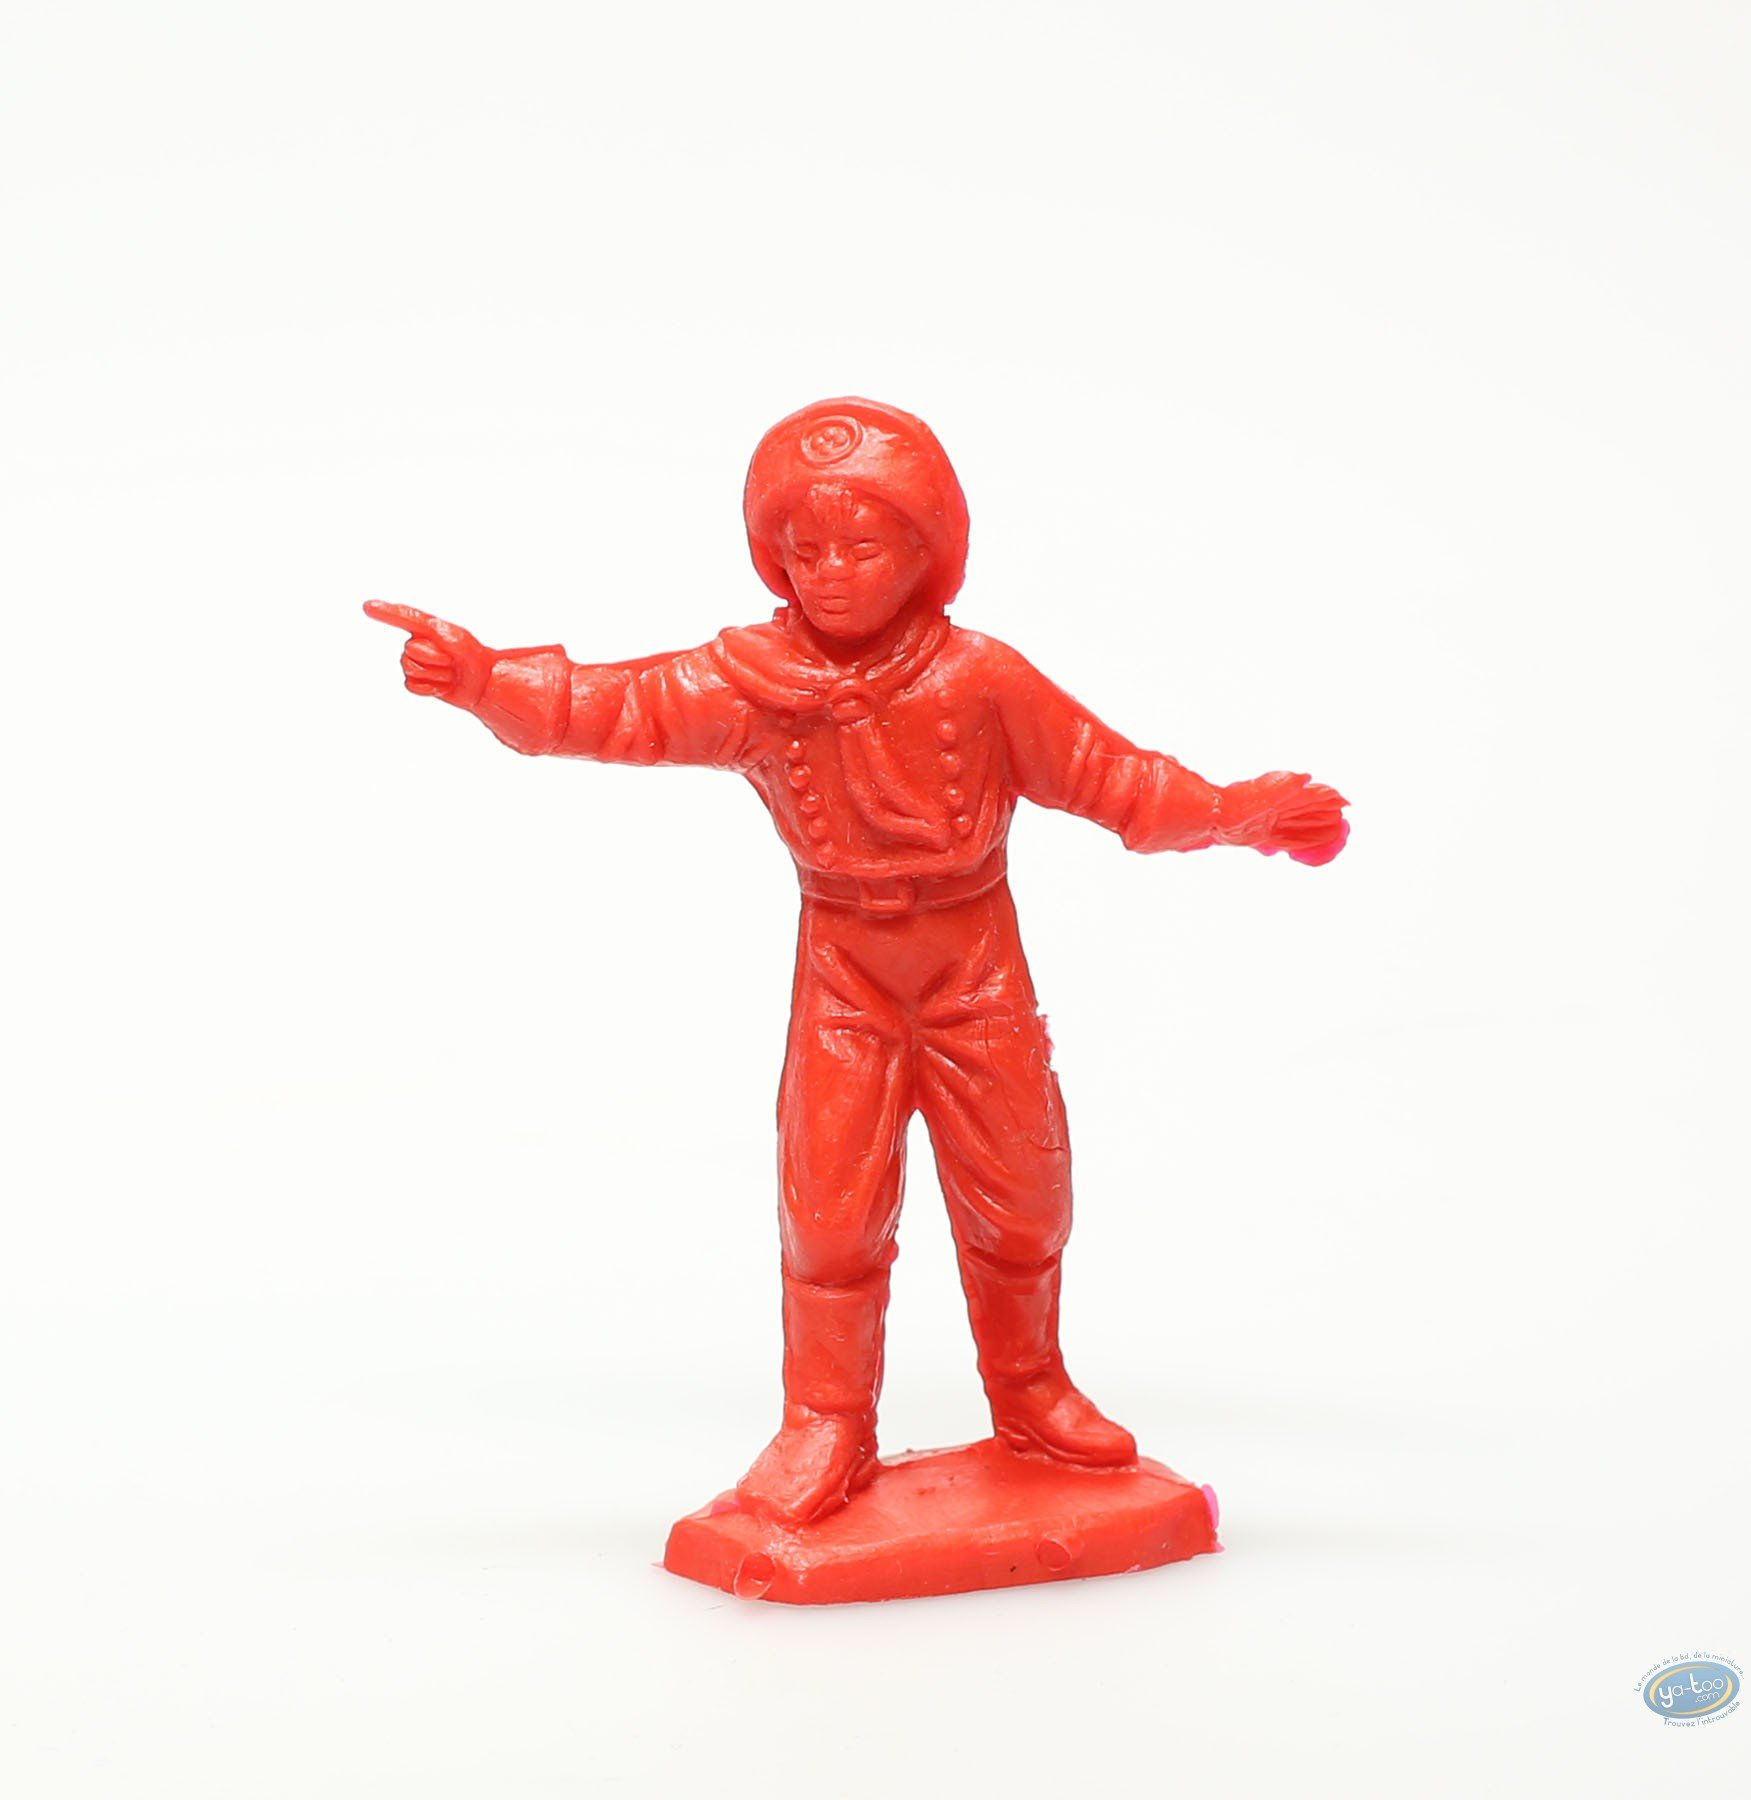 Plastic Figurine, Rintintin : Plastic figure : Young boy pointing red